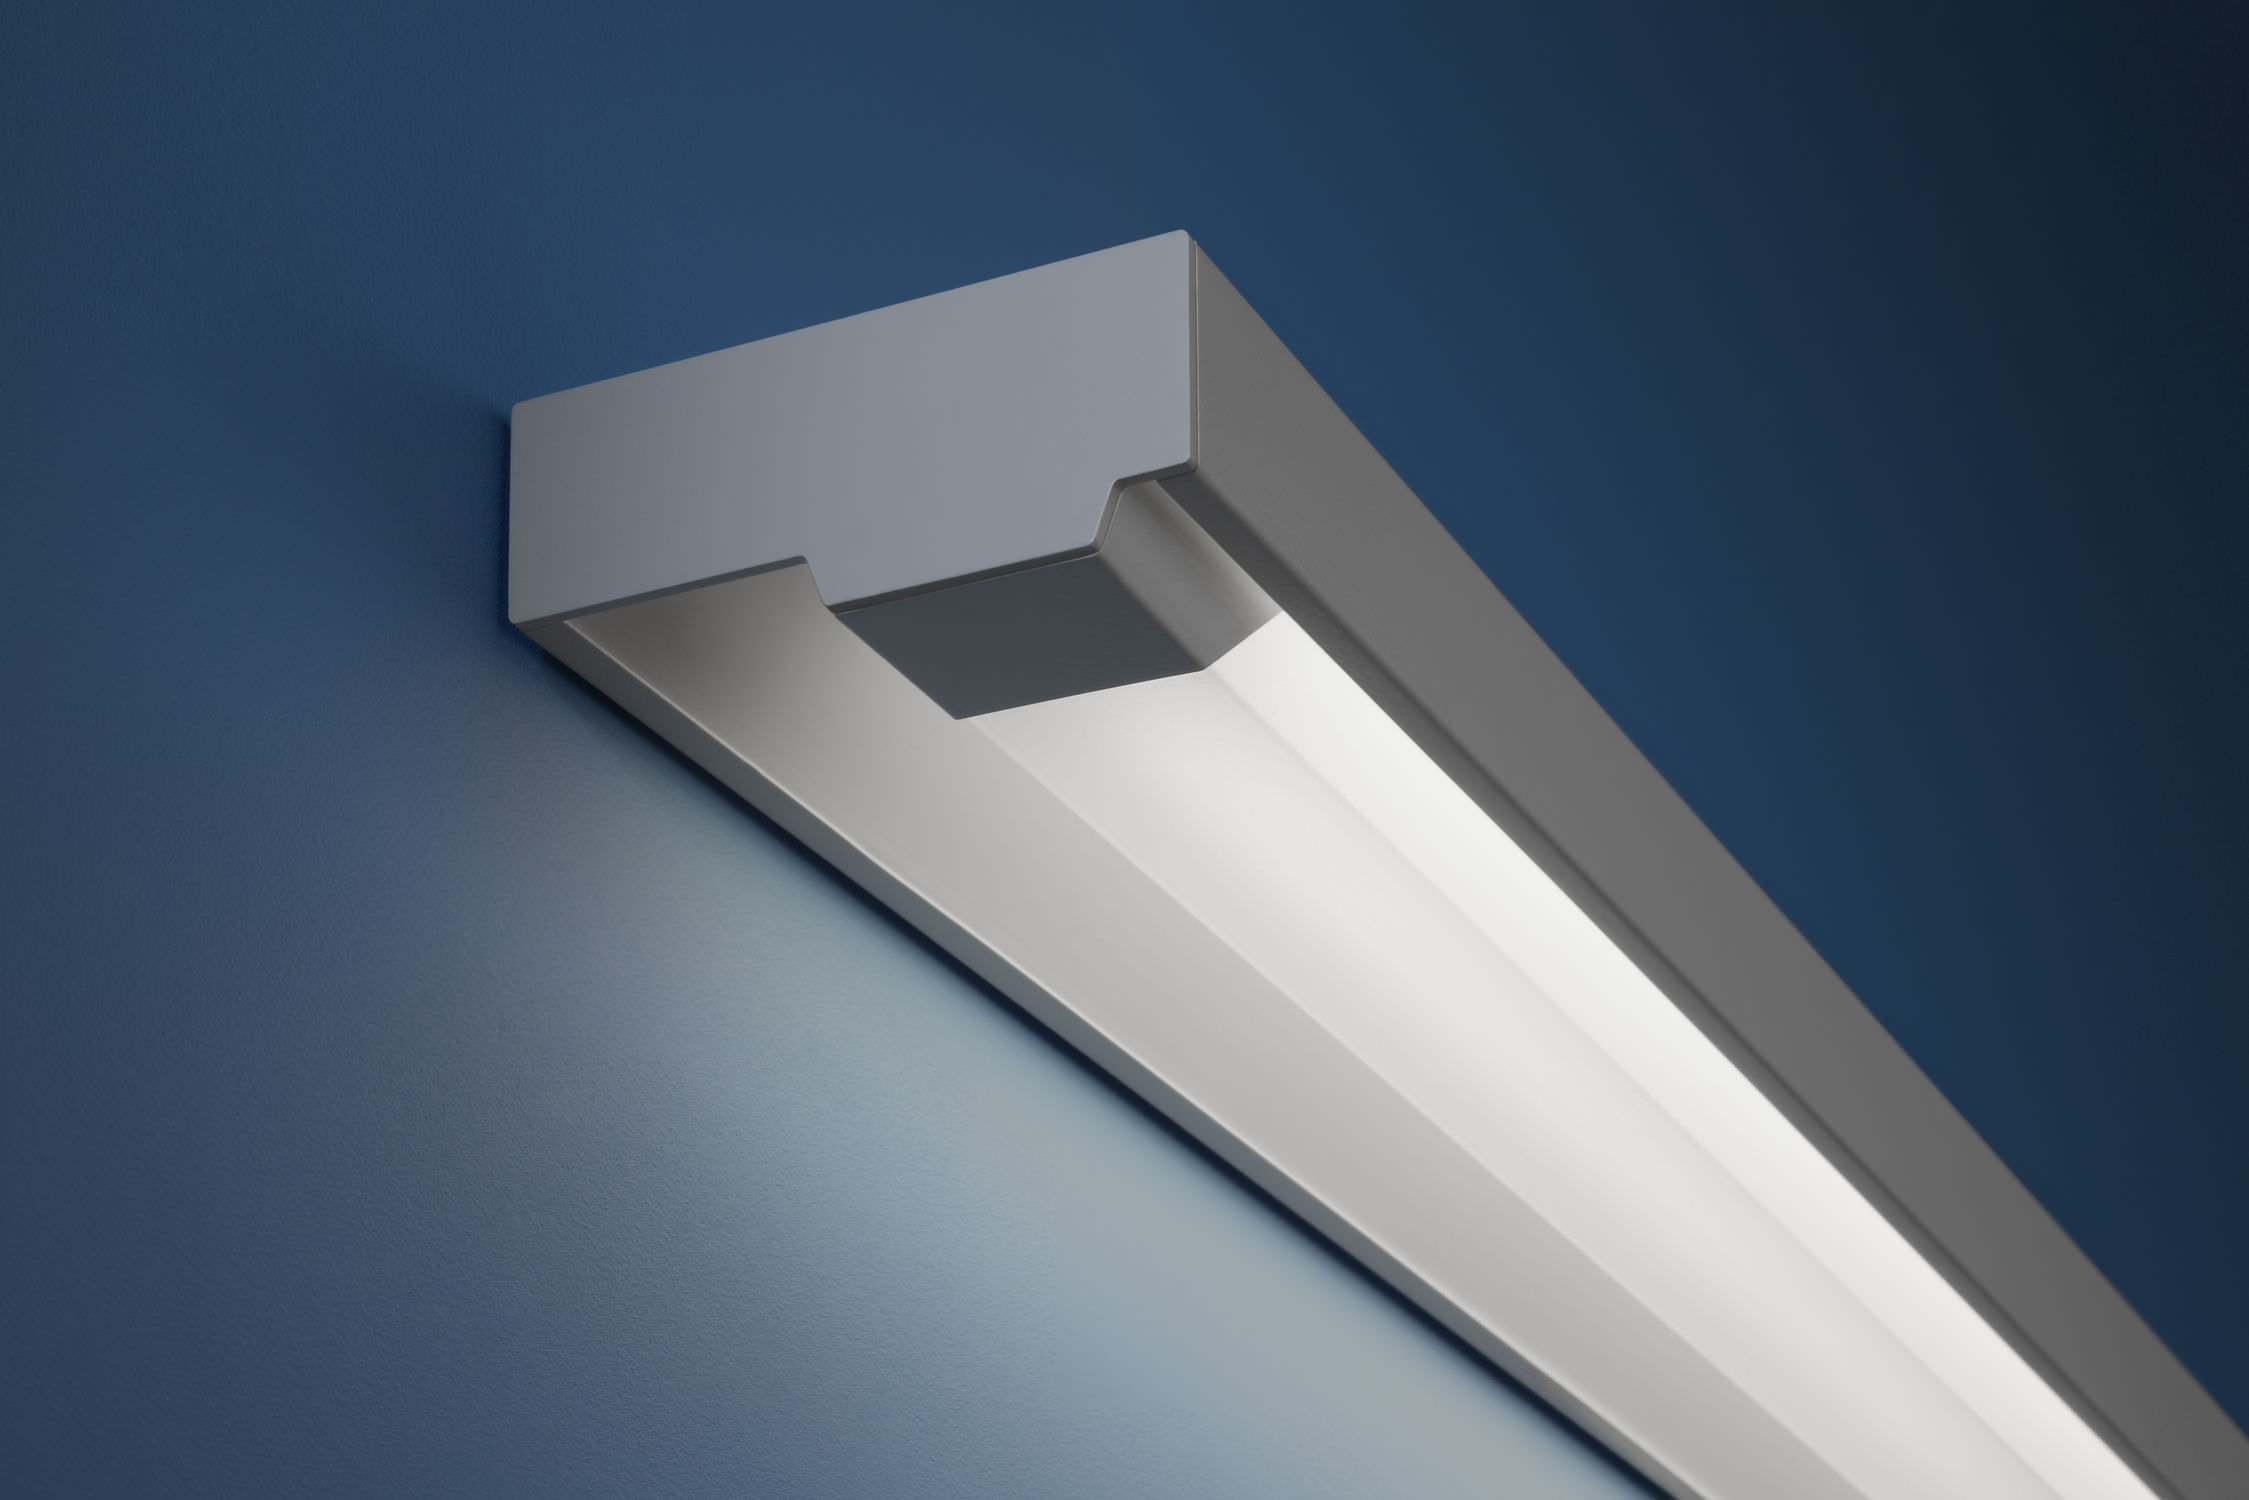 Wall Mounted Fluorescent Lamp : Implication of Fluorescent light technology in day to day activities Warisan Lighting